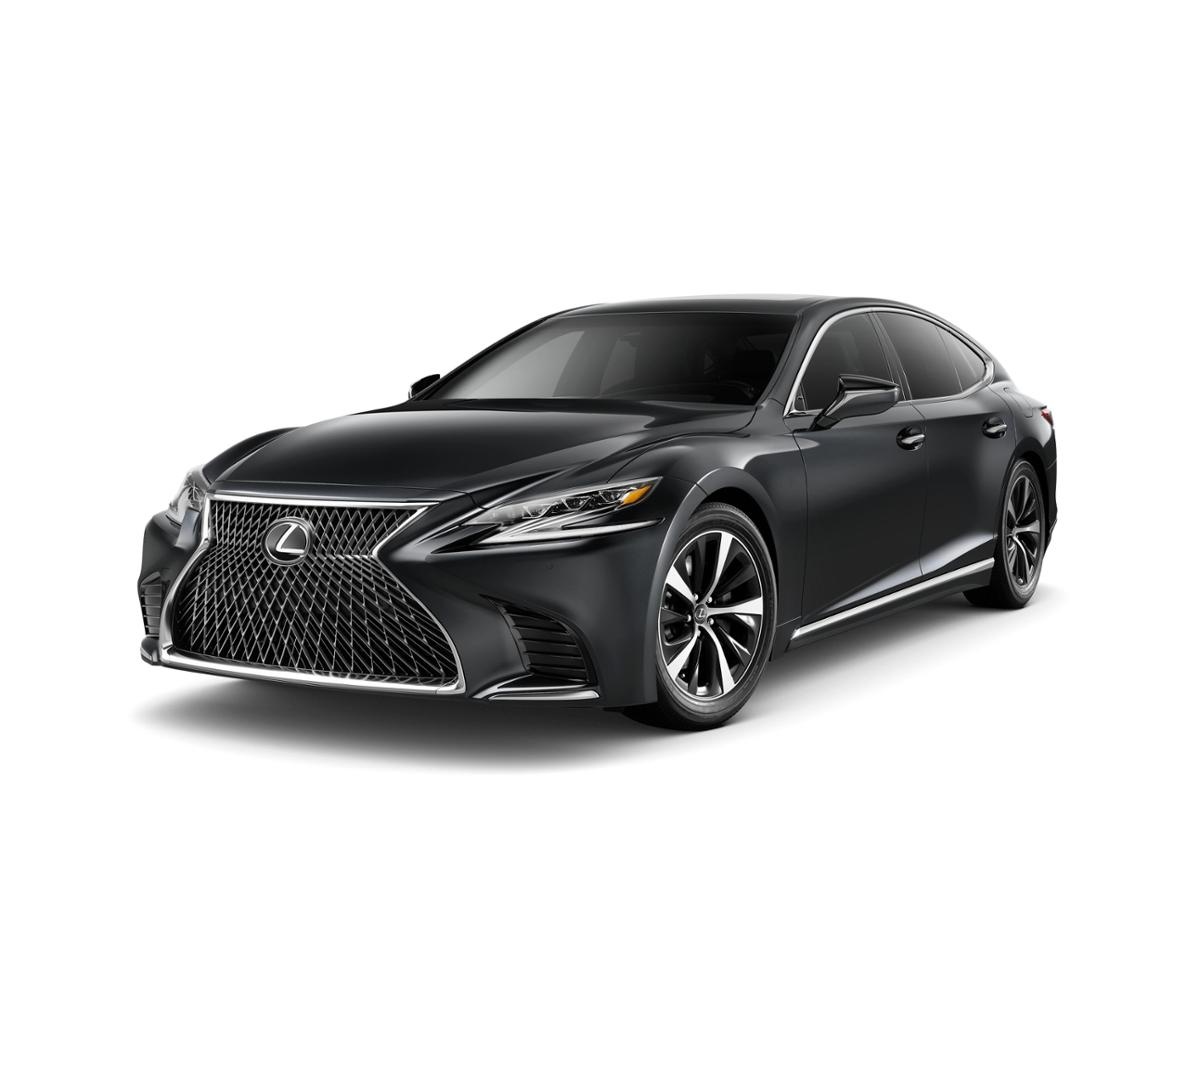 2019 Lexus LS 500 Vehicle Photo in Danvers, MA 01923